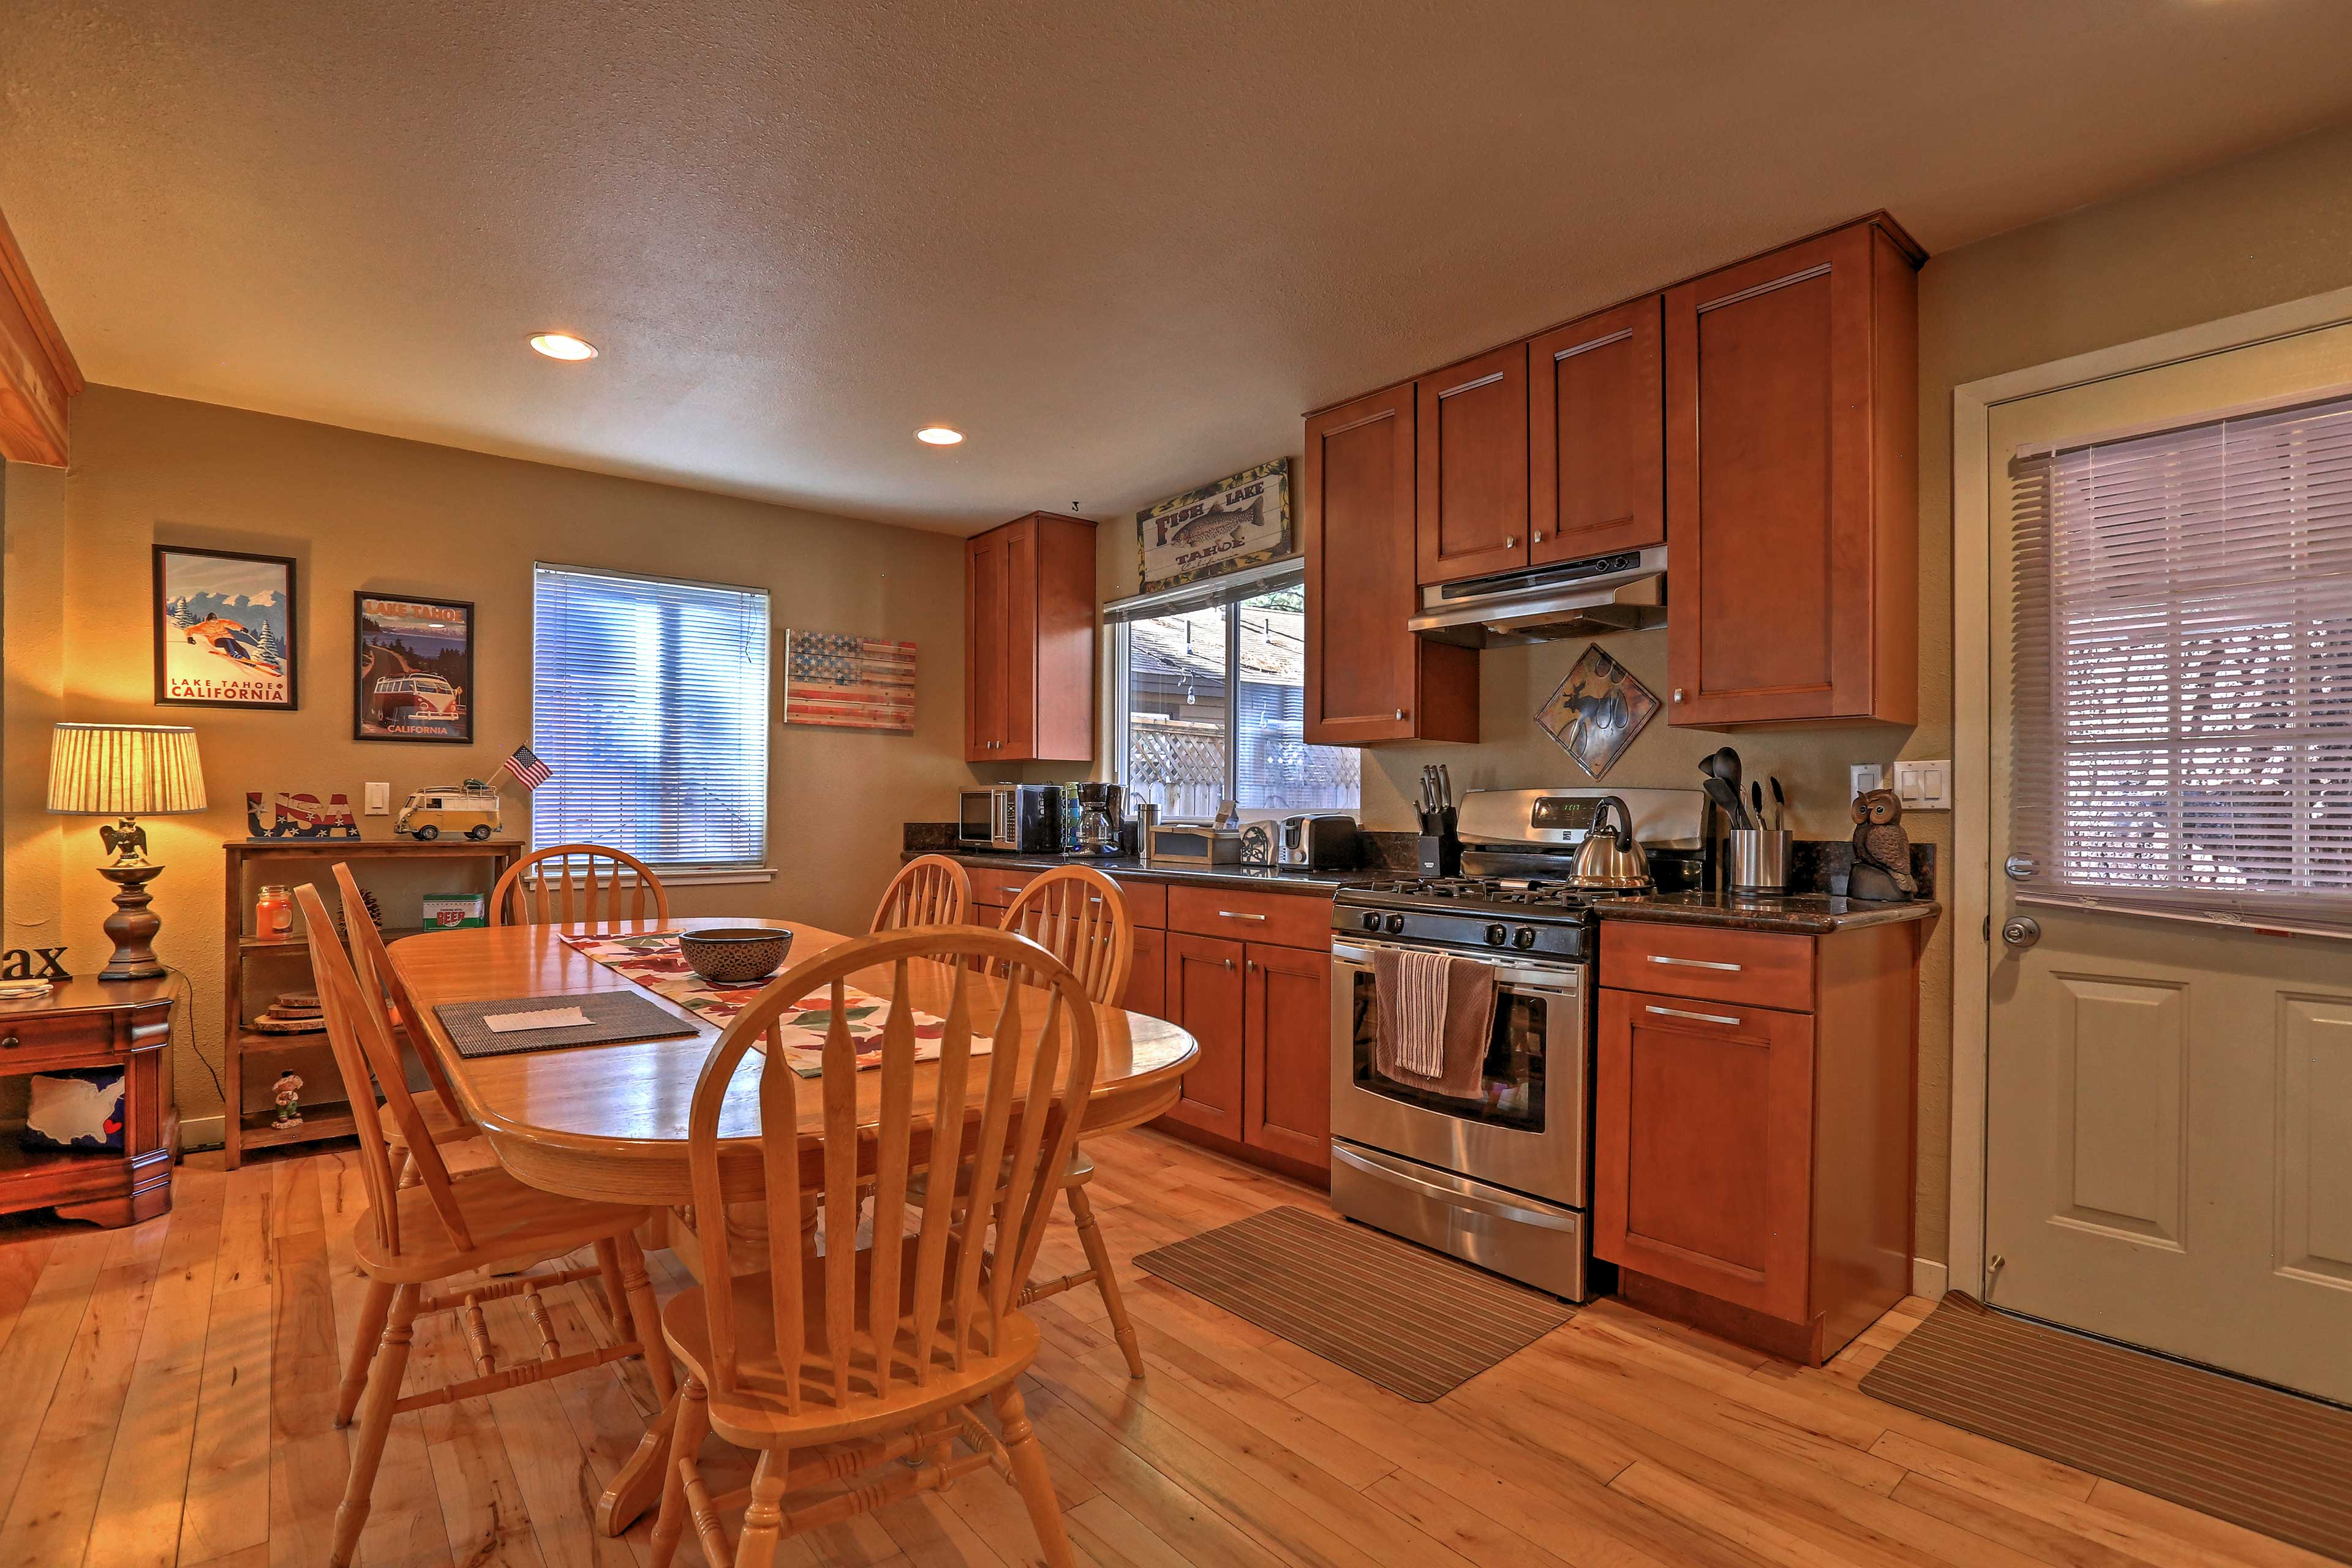 Natural wood elements, stainless steal appliances, and granite counters highlight the fully equipped kitchen.